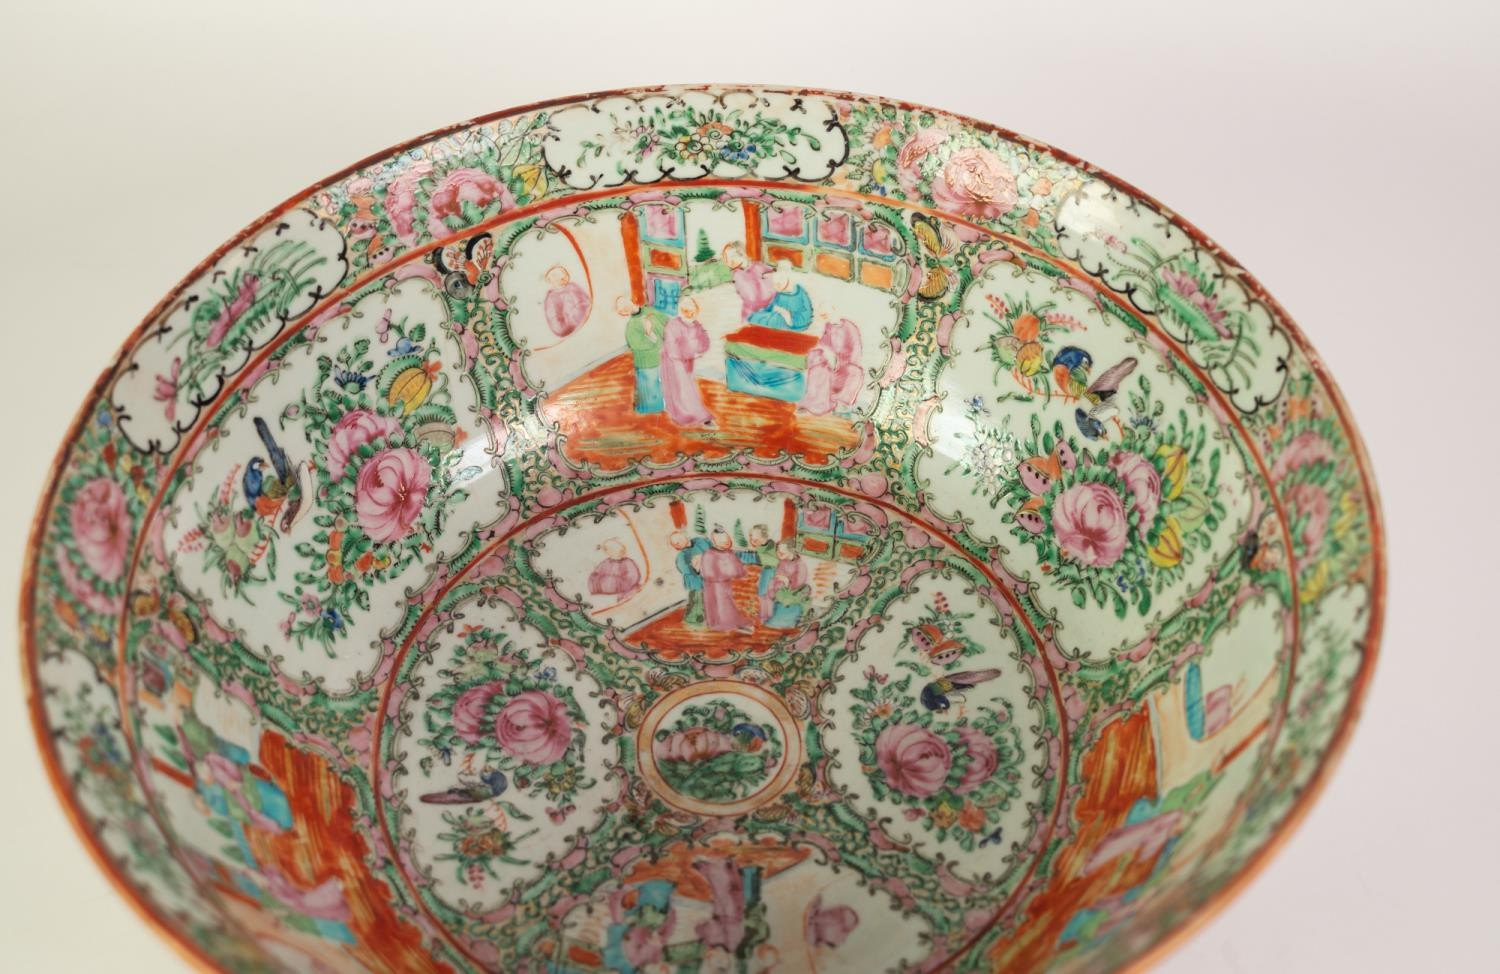 TWENTIETH CENTURY CHINESE FAMILLE ROSE PORCELAIN ROSE BOWL, of slightly flared, footed form, - Image 3 of 4